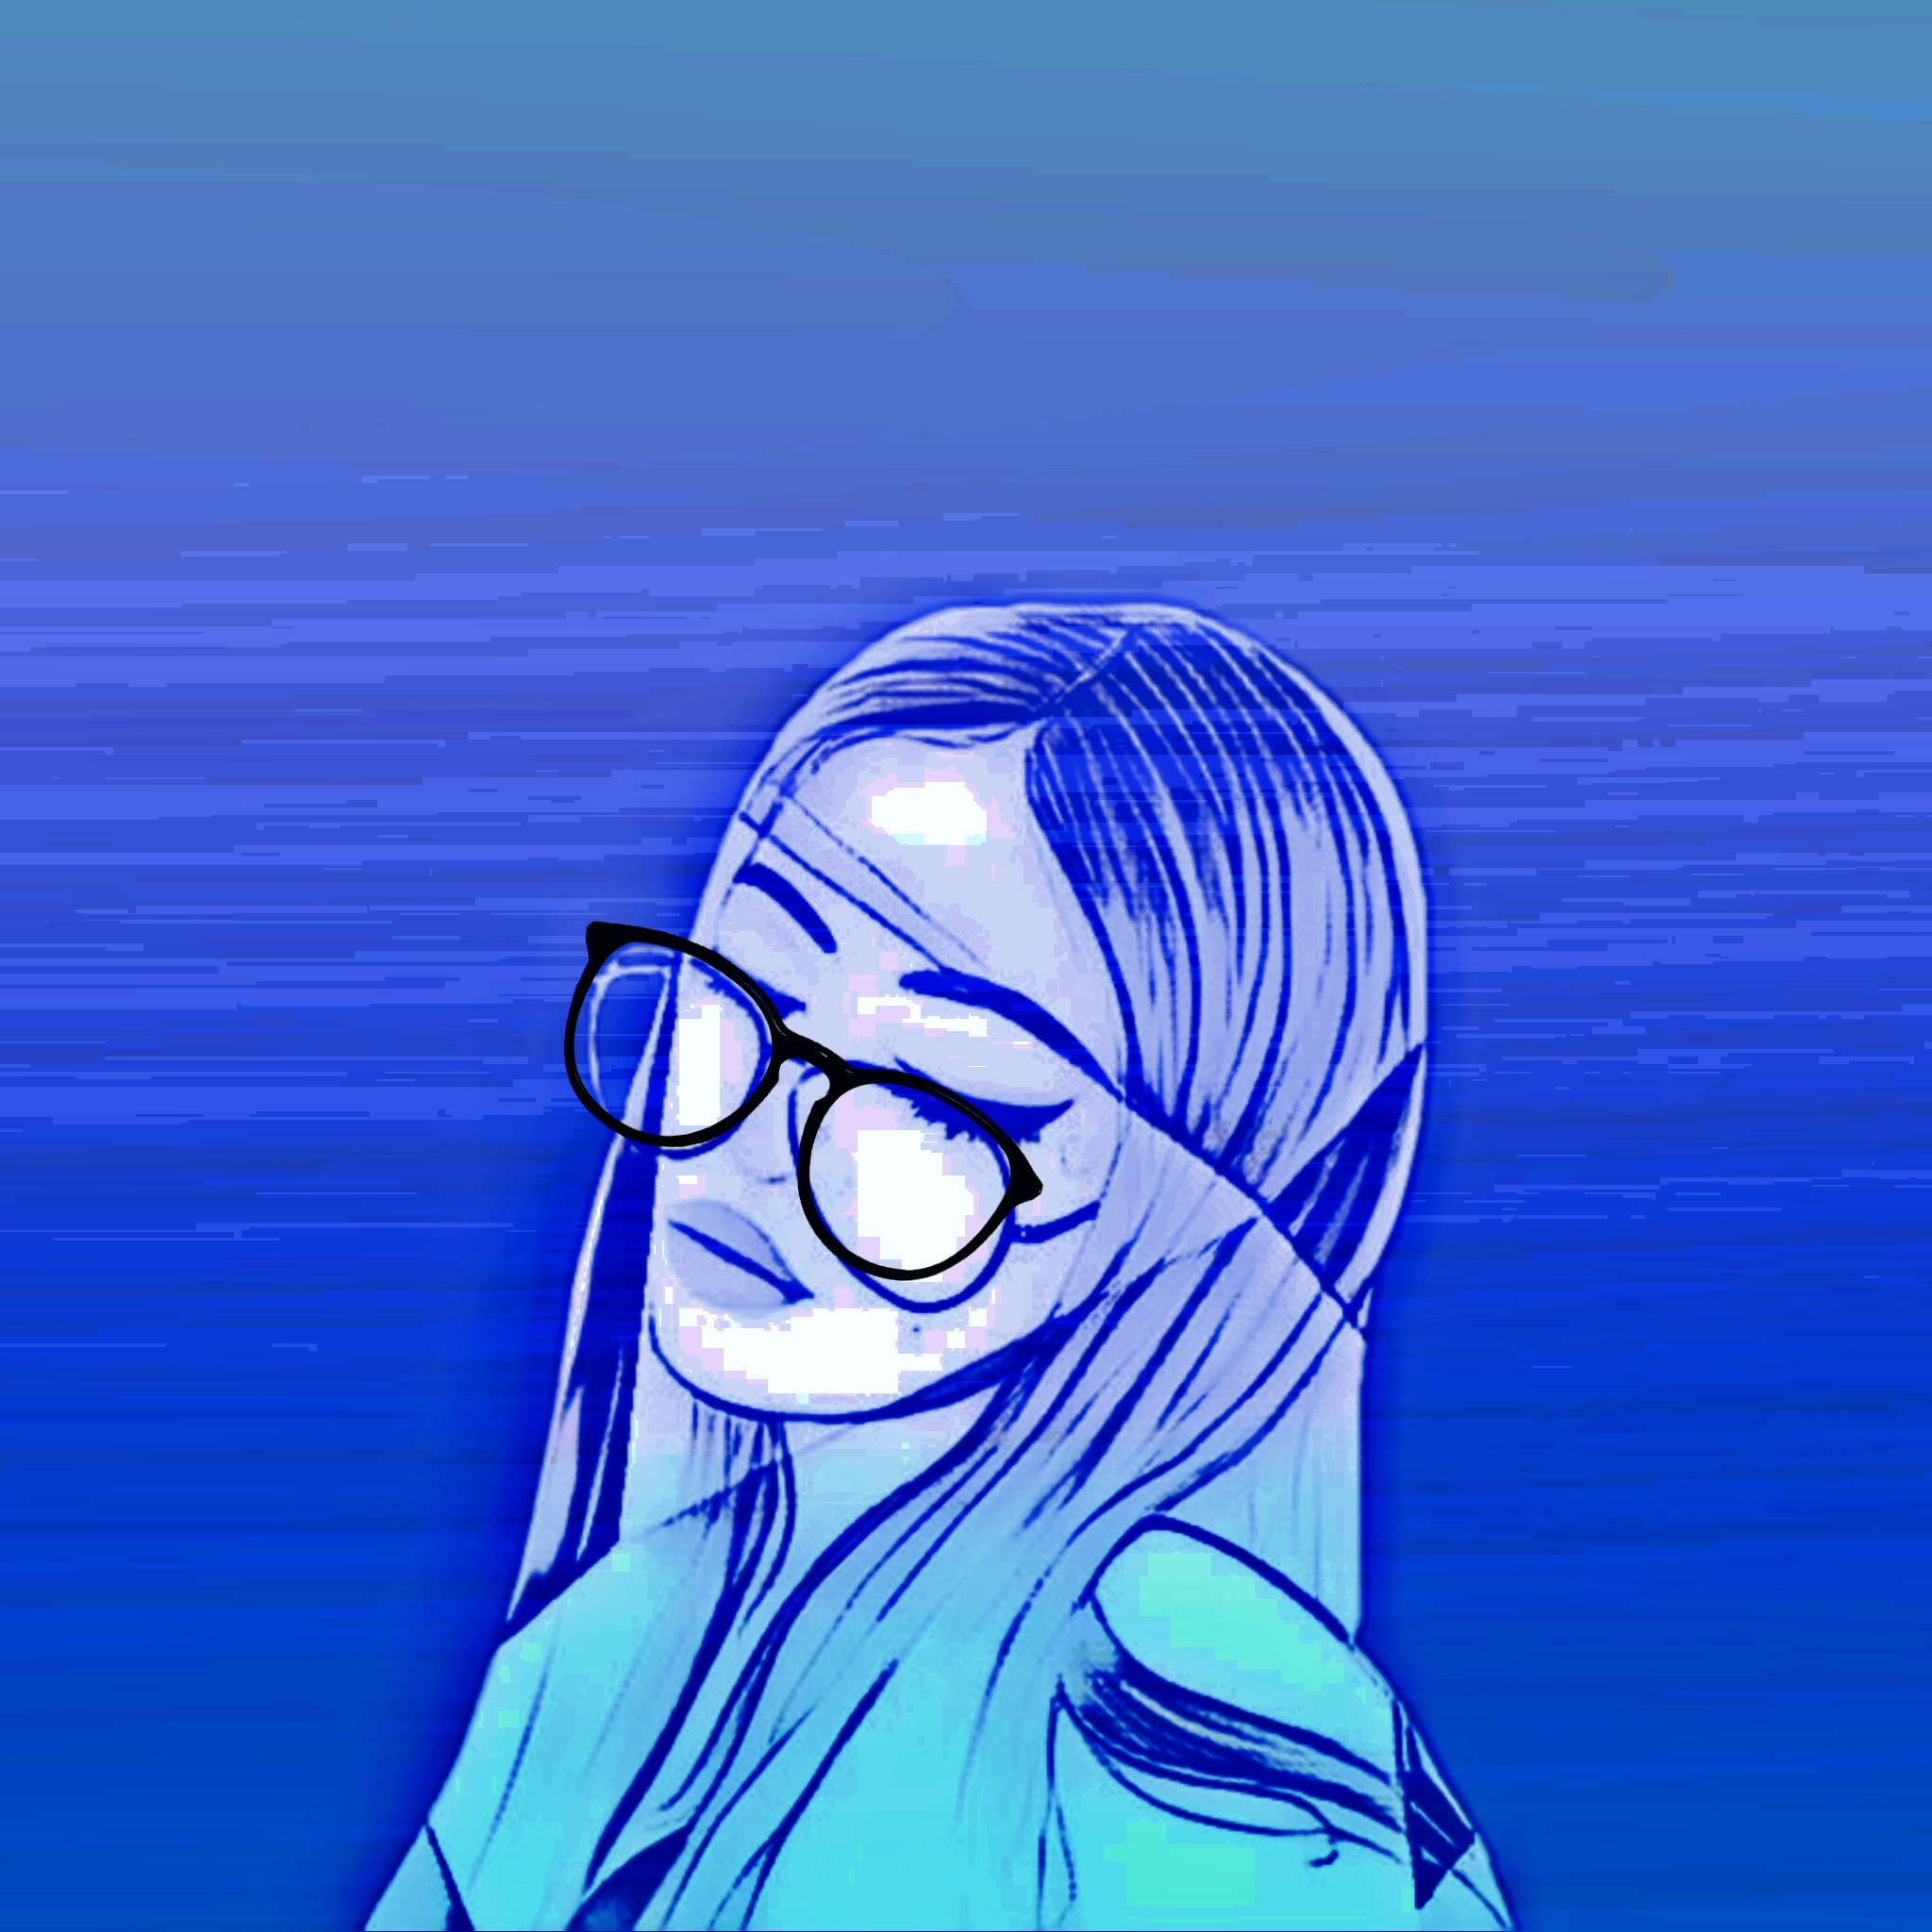 A girl wearing sunglasses illustration